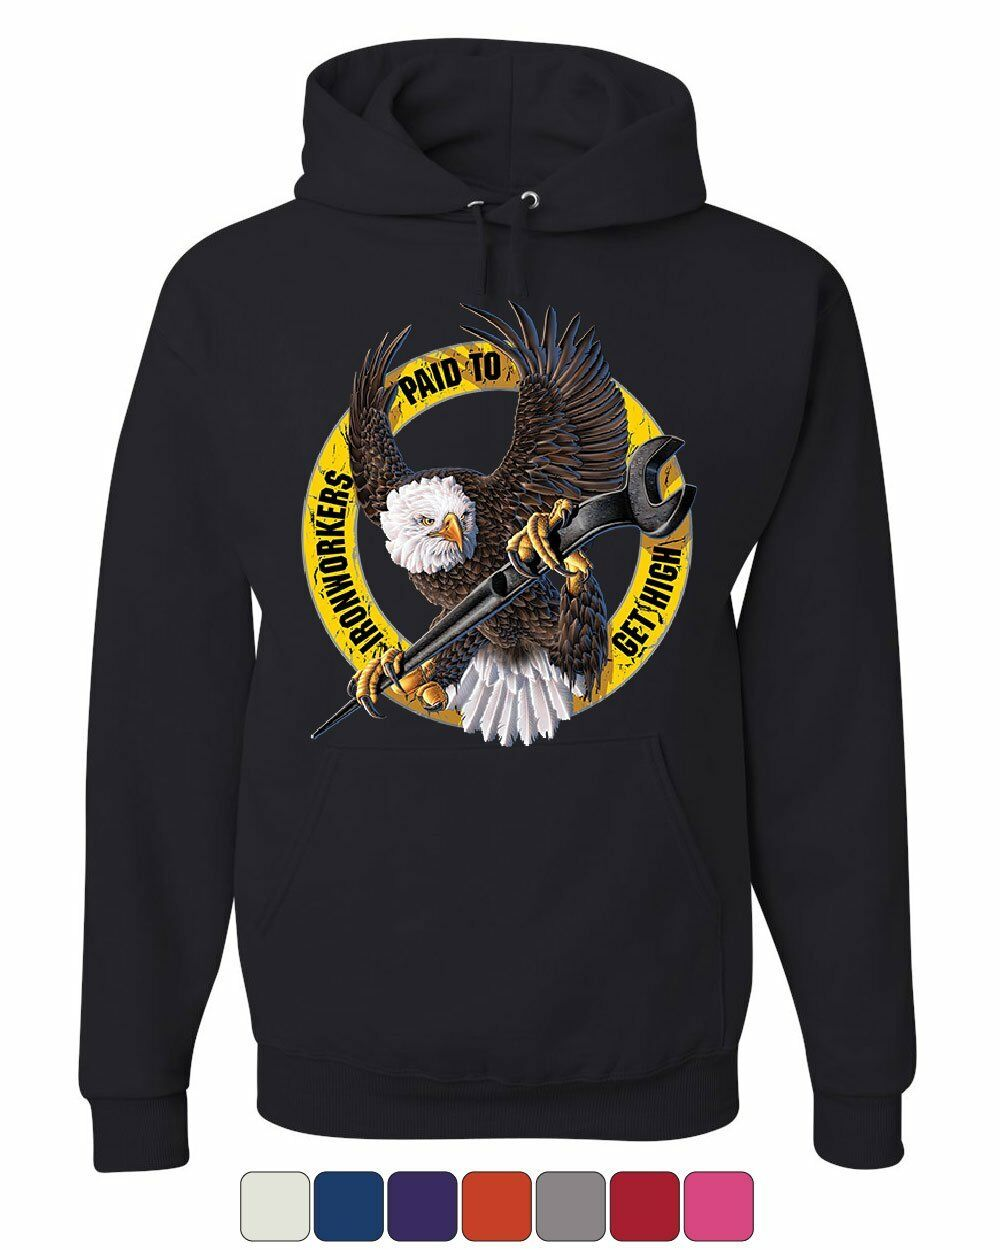 Ironworkers Paid to Get High Hoodie Construction Workers Union Sweatshirt